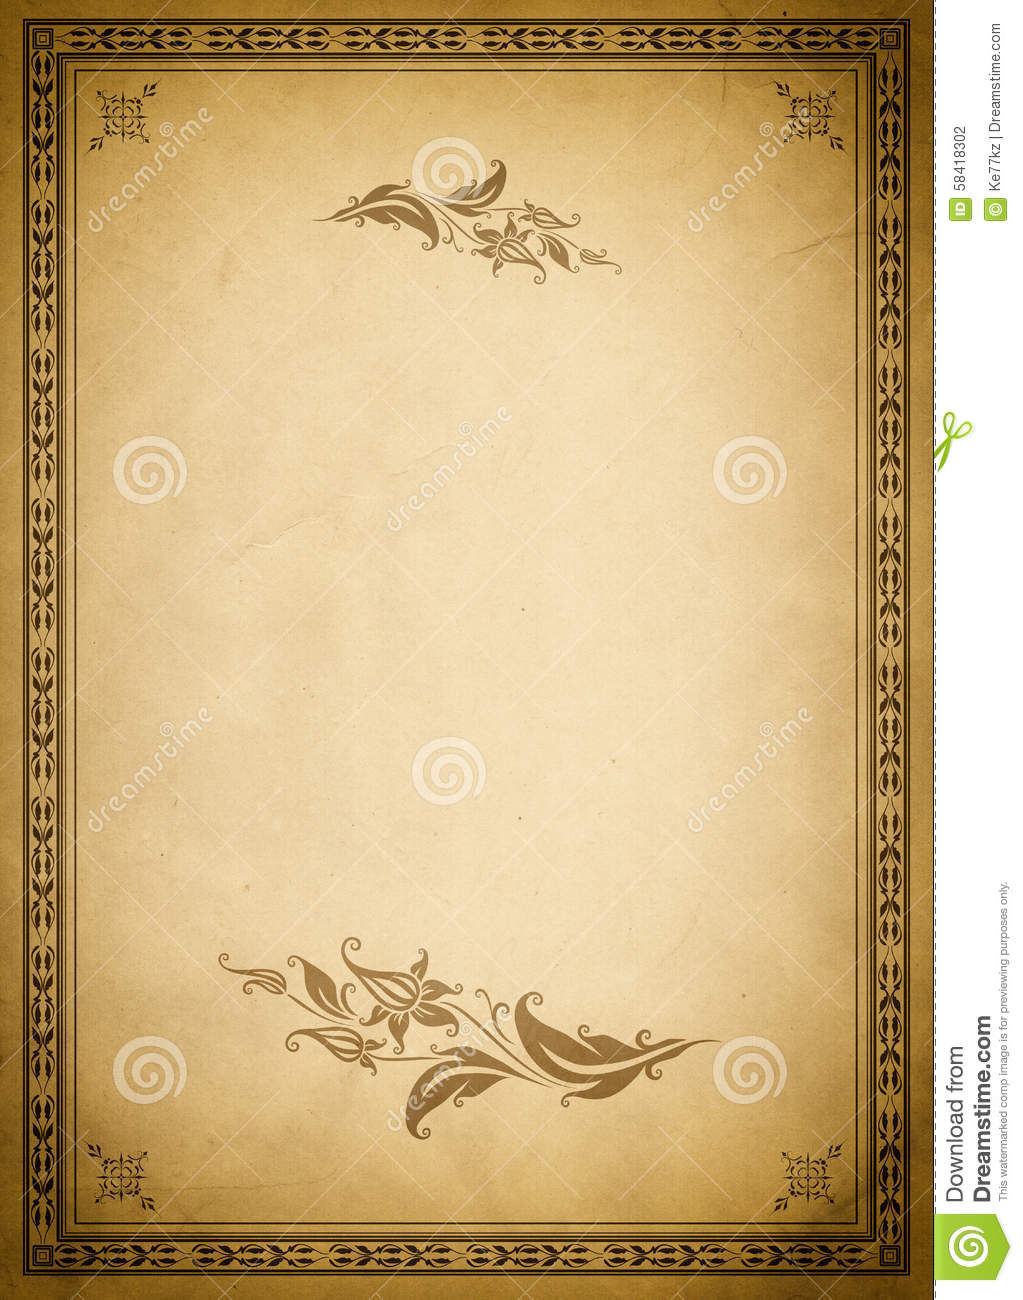 Old Paper Backdrop And Fashioned Border Stock Photo